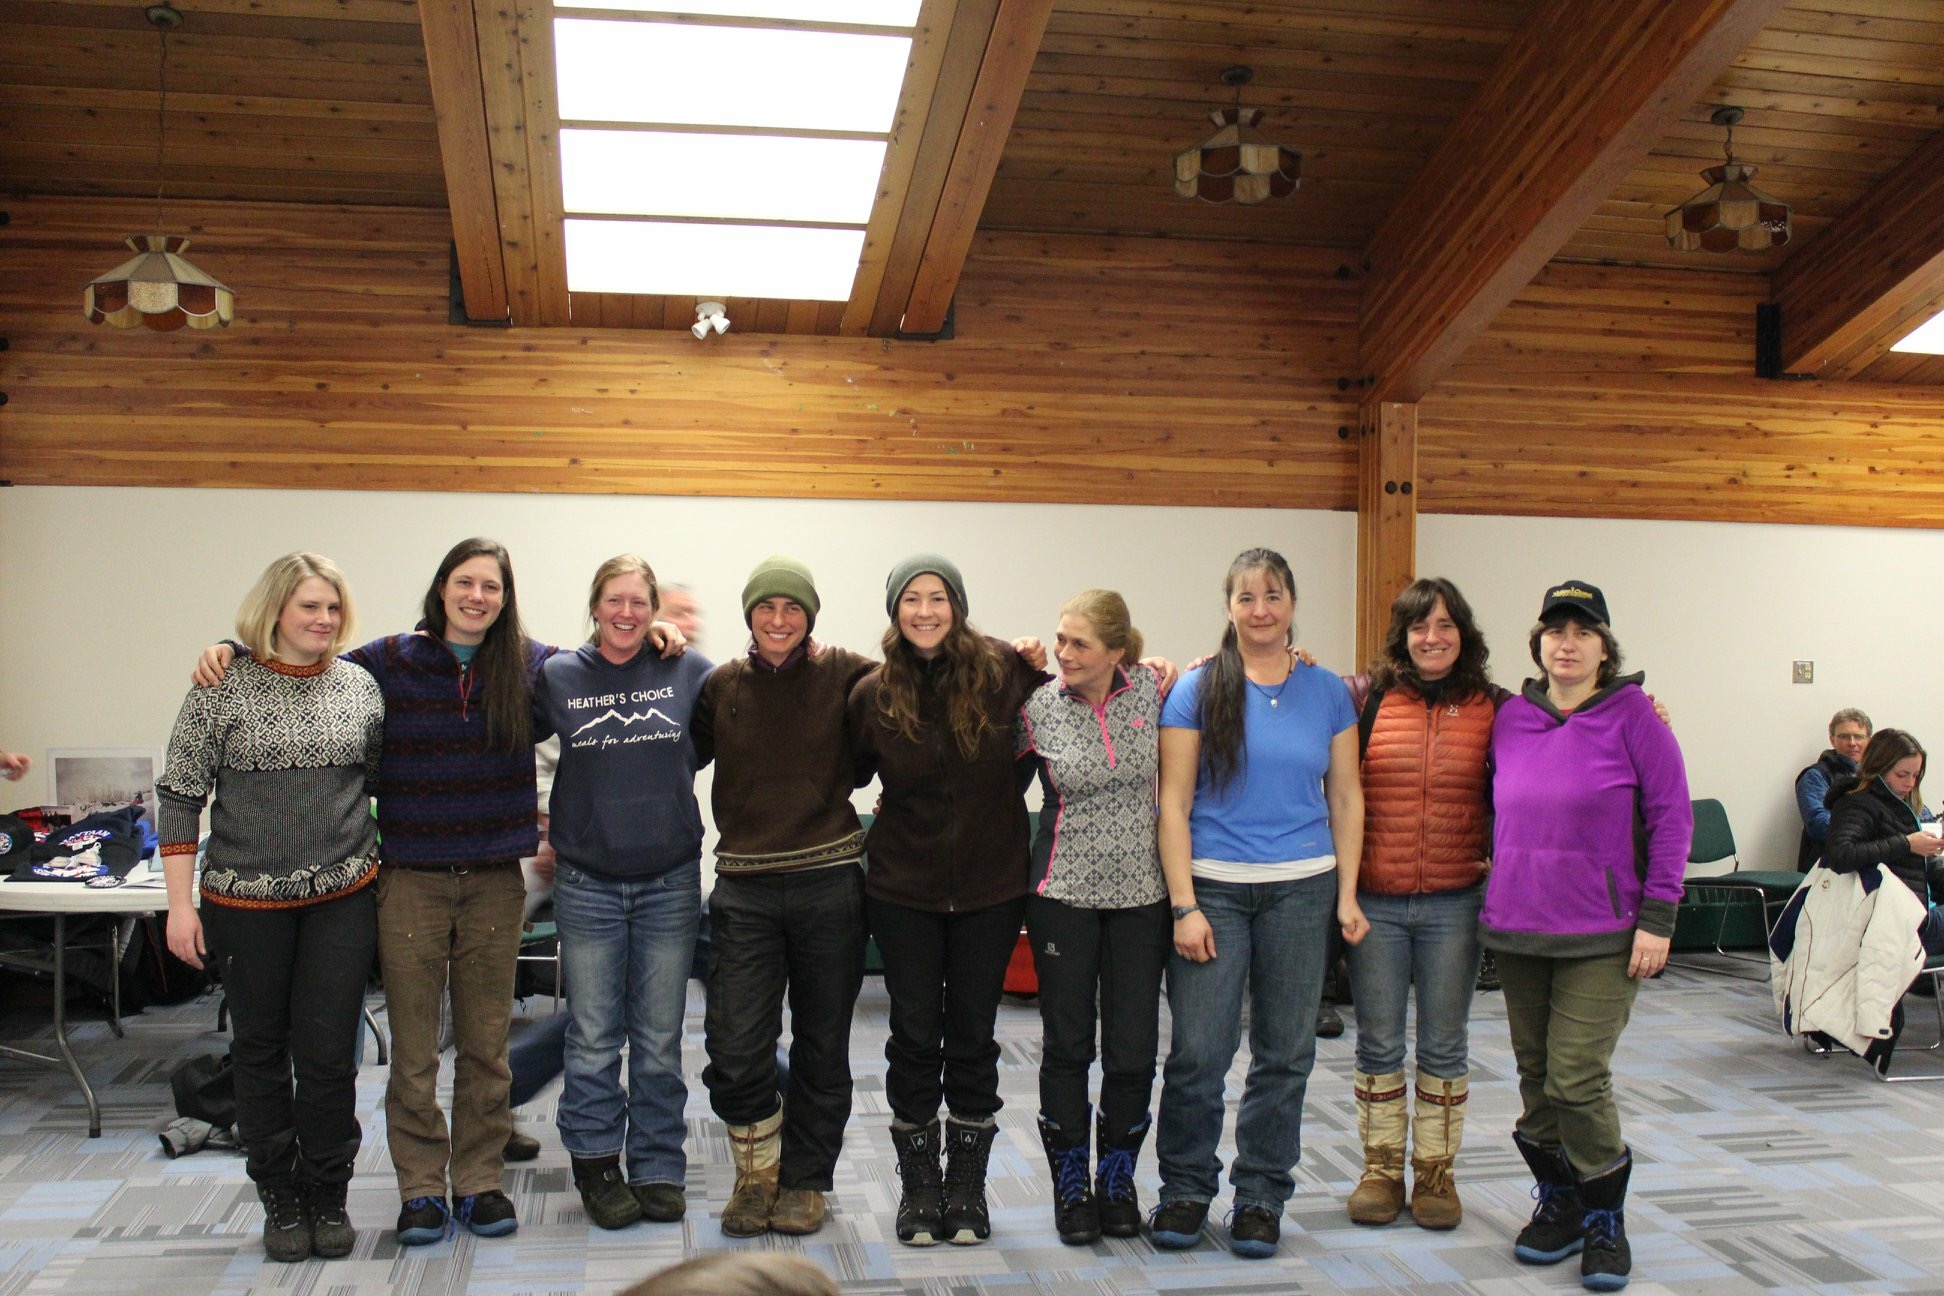 The Women of the Yukon Quest